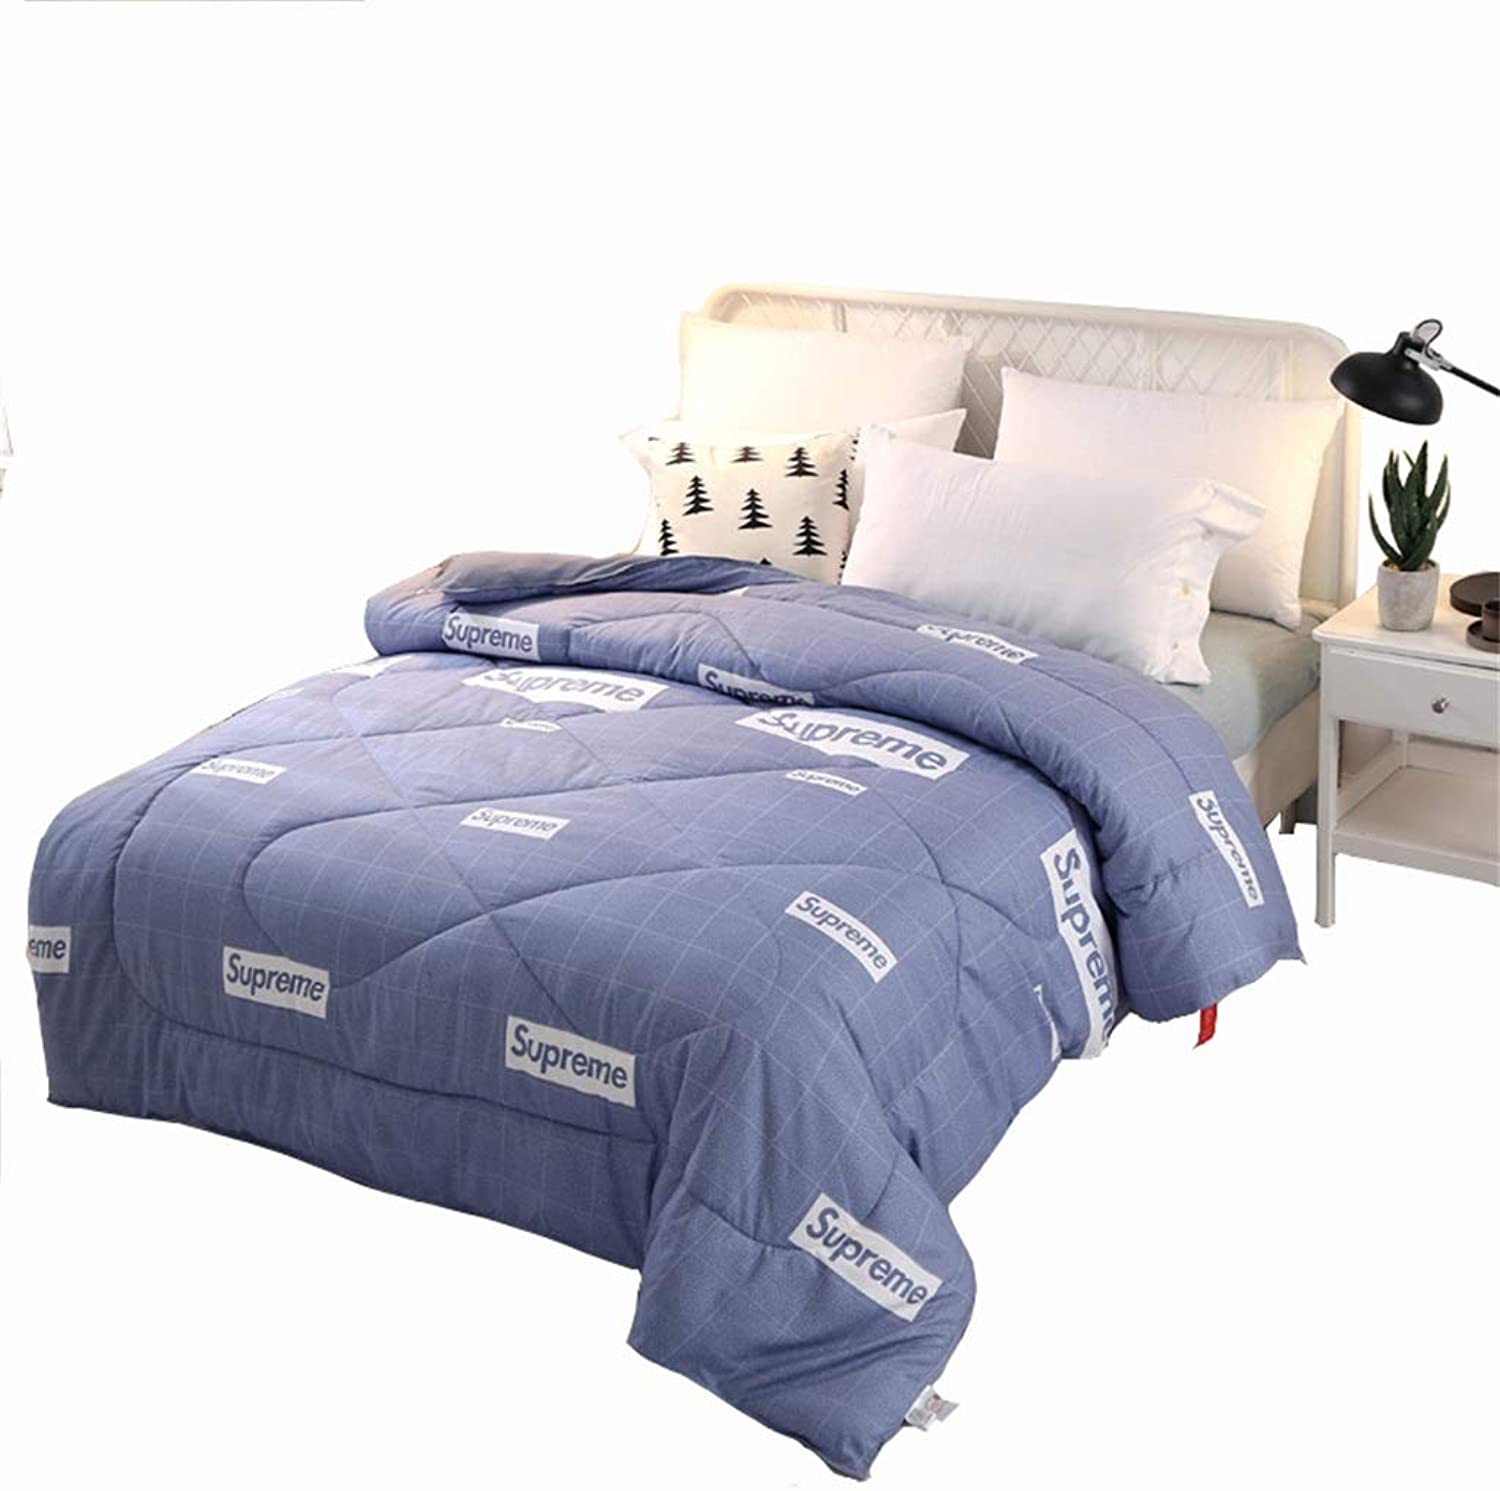 Warm Quilt Lattice Duvet Winter Thicked Warm Single Double Bed bluee Bedding - Family Student Dormitory Comforter - Polyester Fabric Fashion Printing Fluffy Quilt Antiallergic Quilt